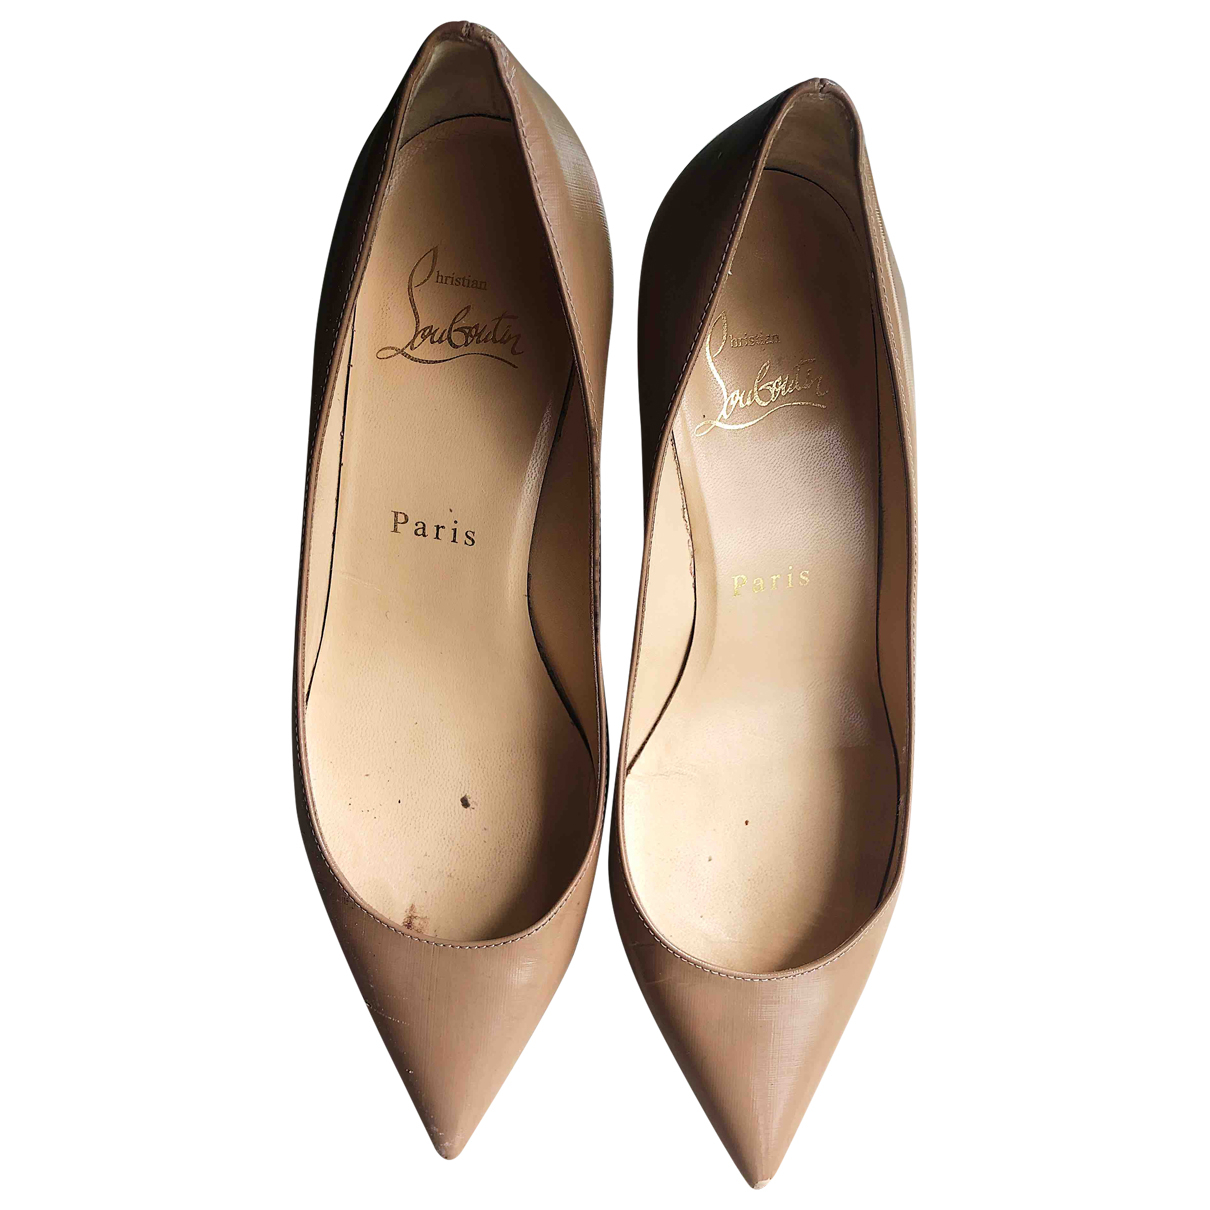 Christian Louboutin Pigalle Beige Leather Heels for Women 35 EU